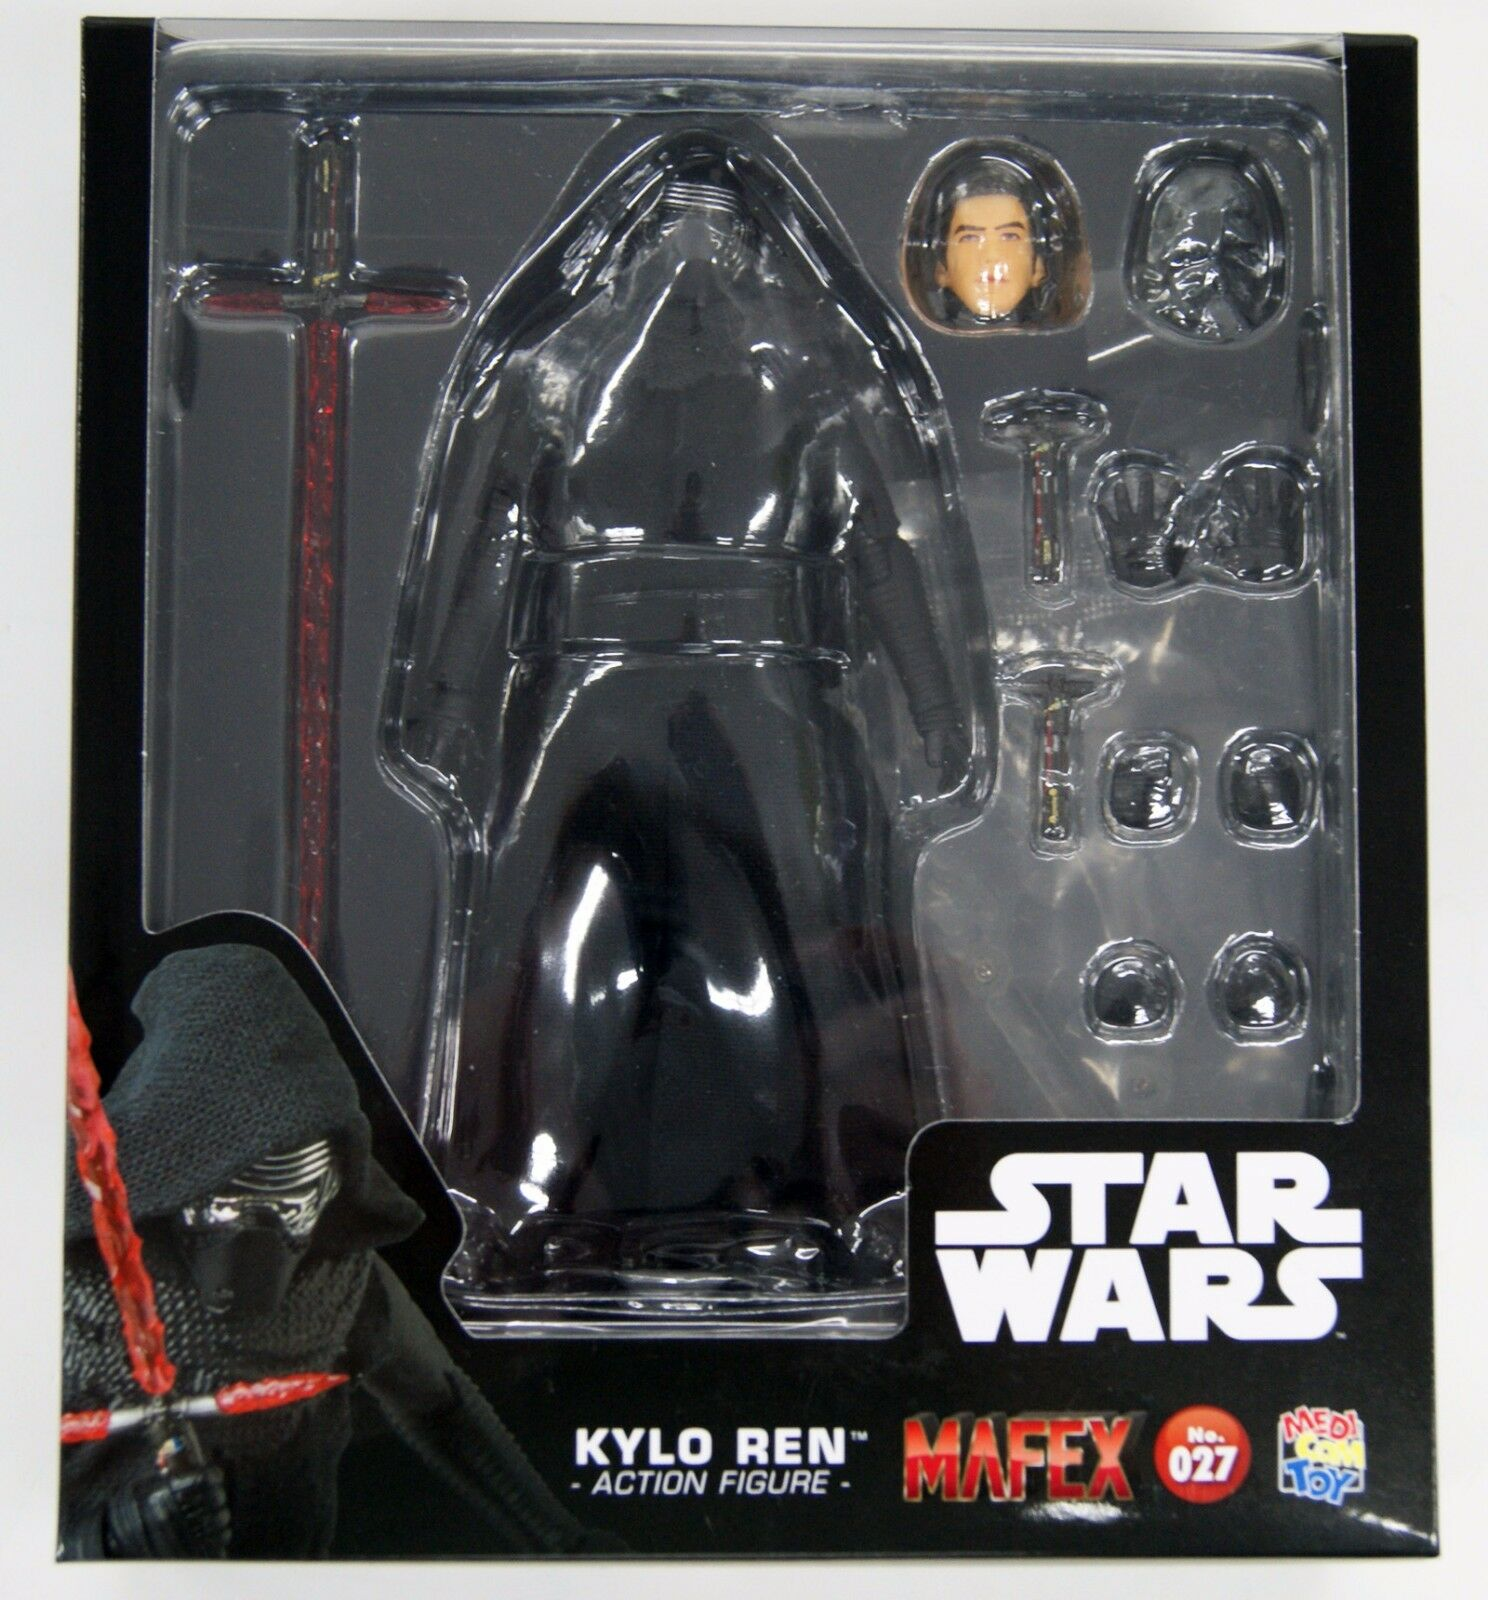 Medicom MAFEX 027 Star Wars The Force Awakens Kylo Ren Figure